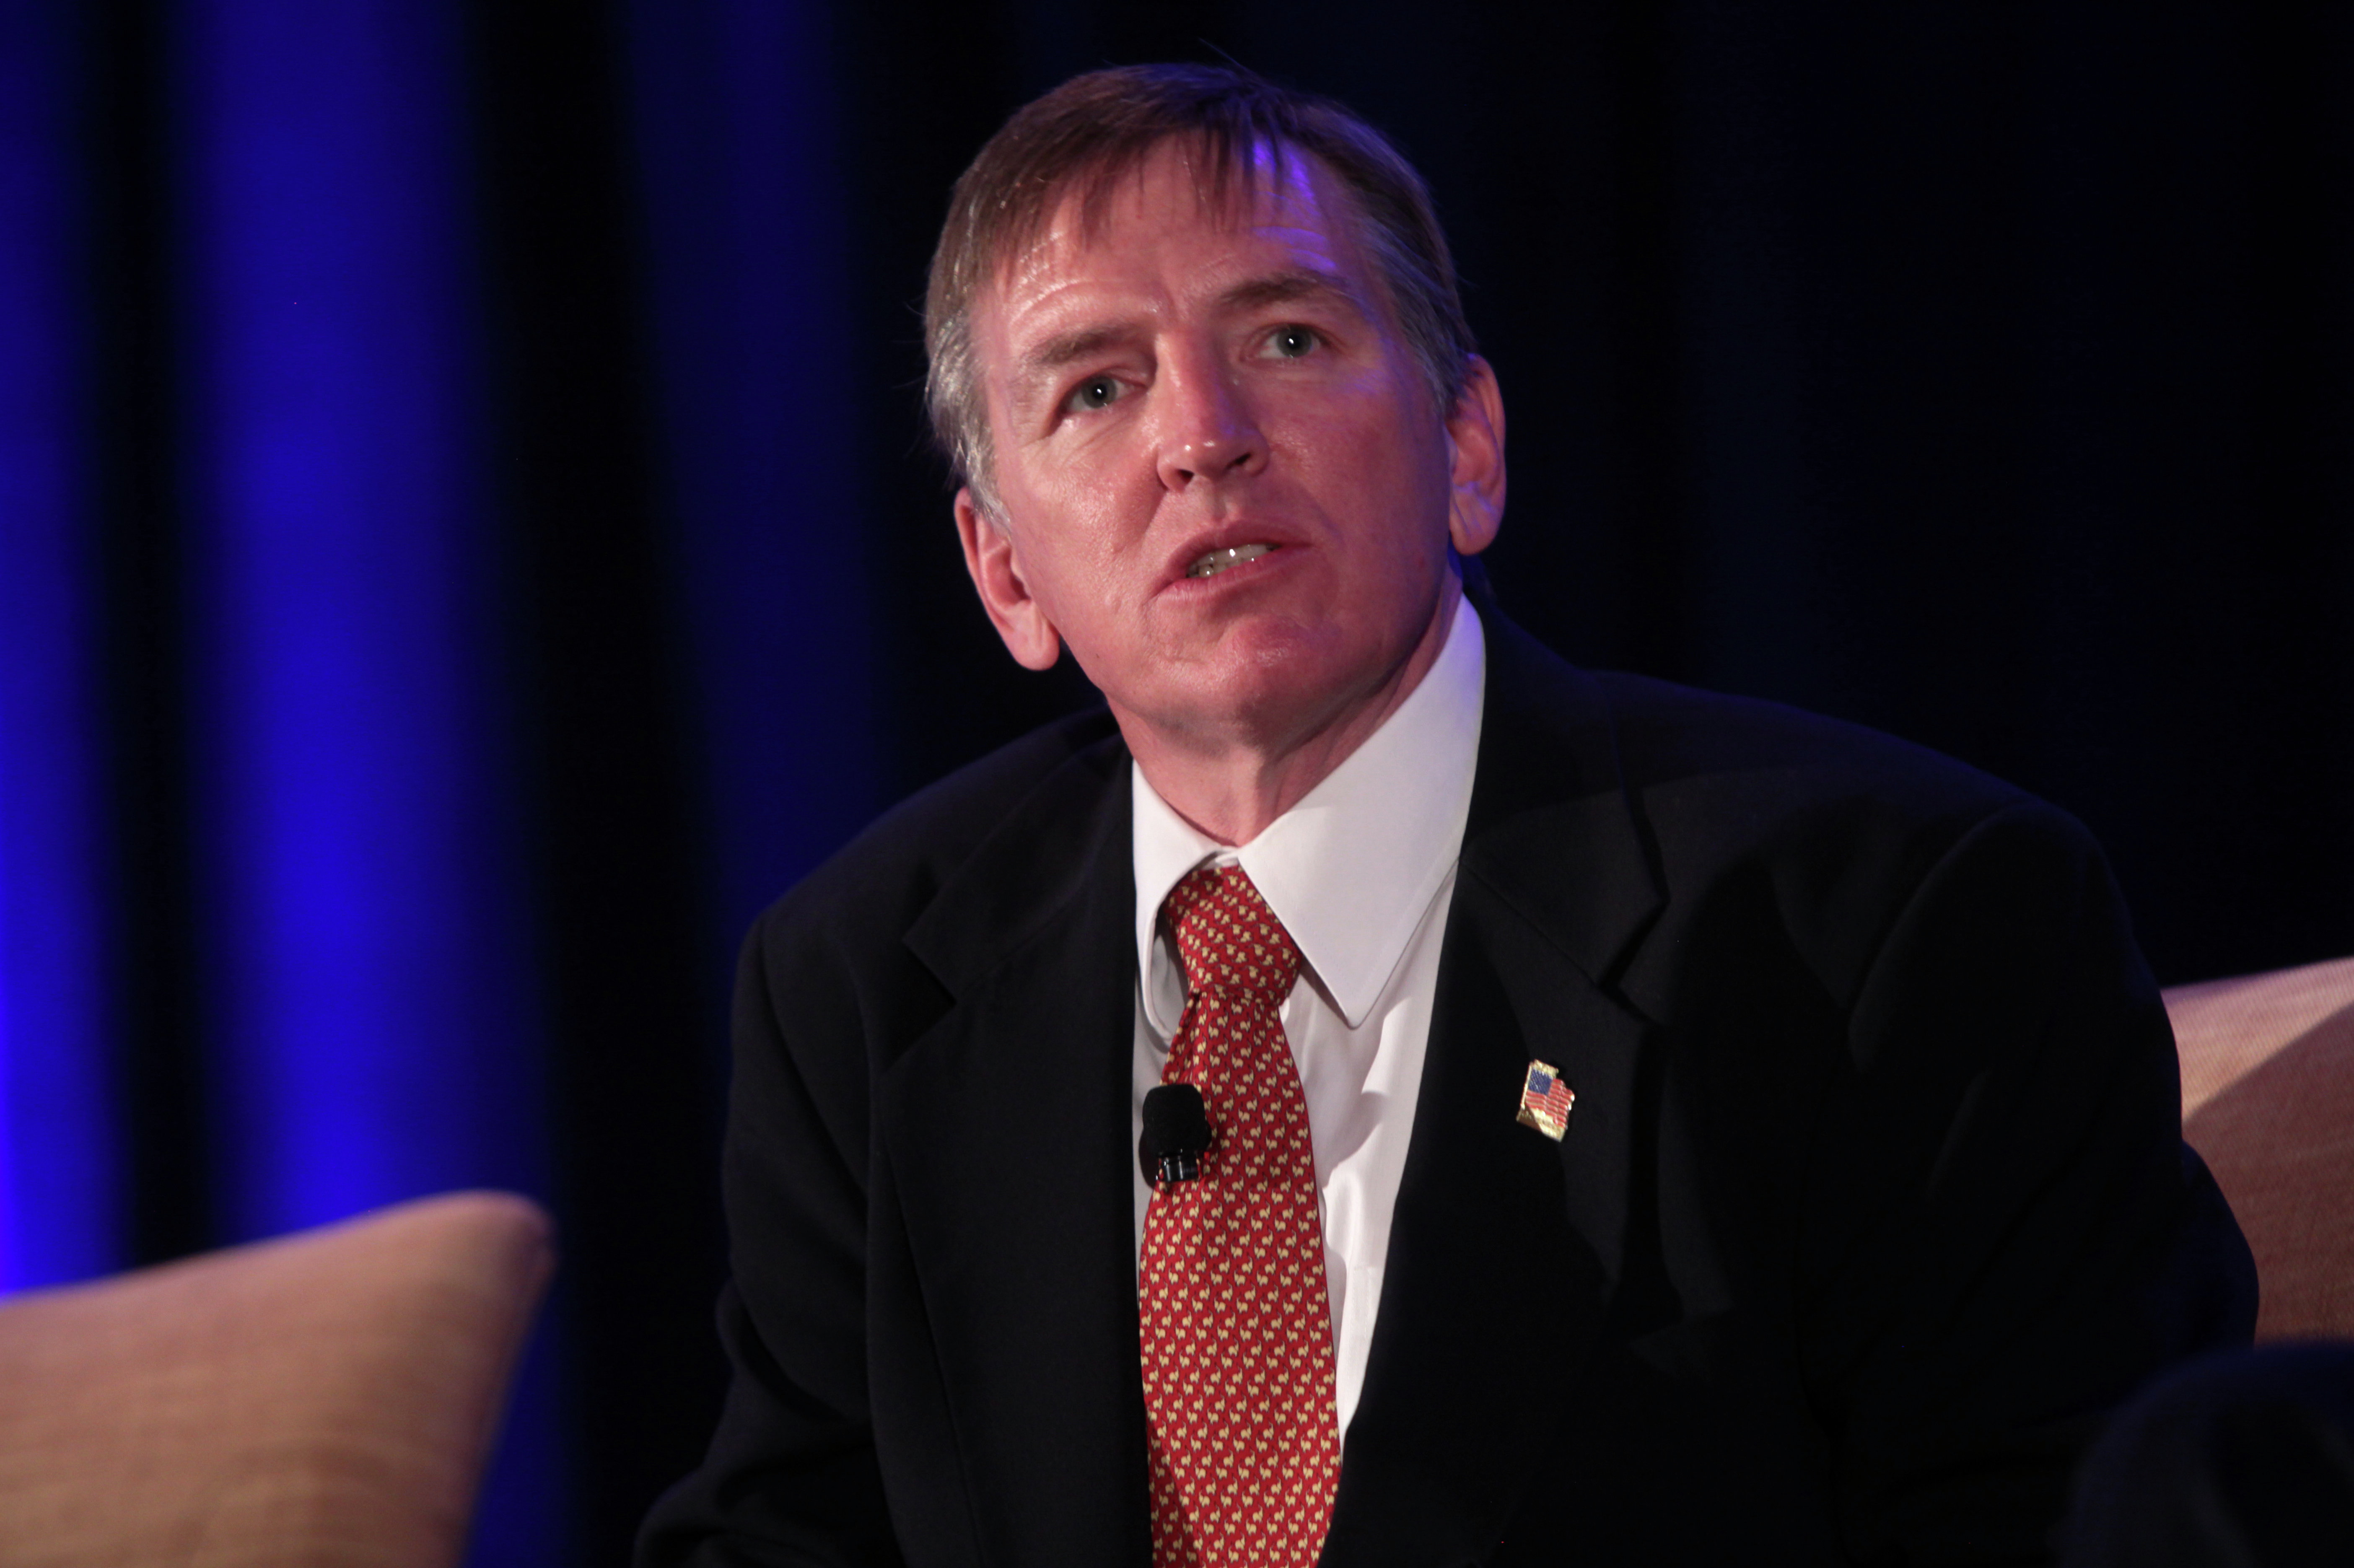 Arizona House Republican Paul Gosar wrote an op-ed for a conservative website saying he will boycott Pope Francis's address to the US Congress.